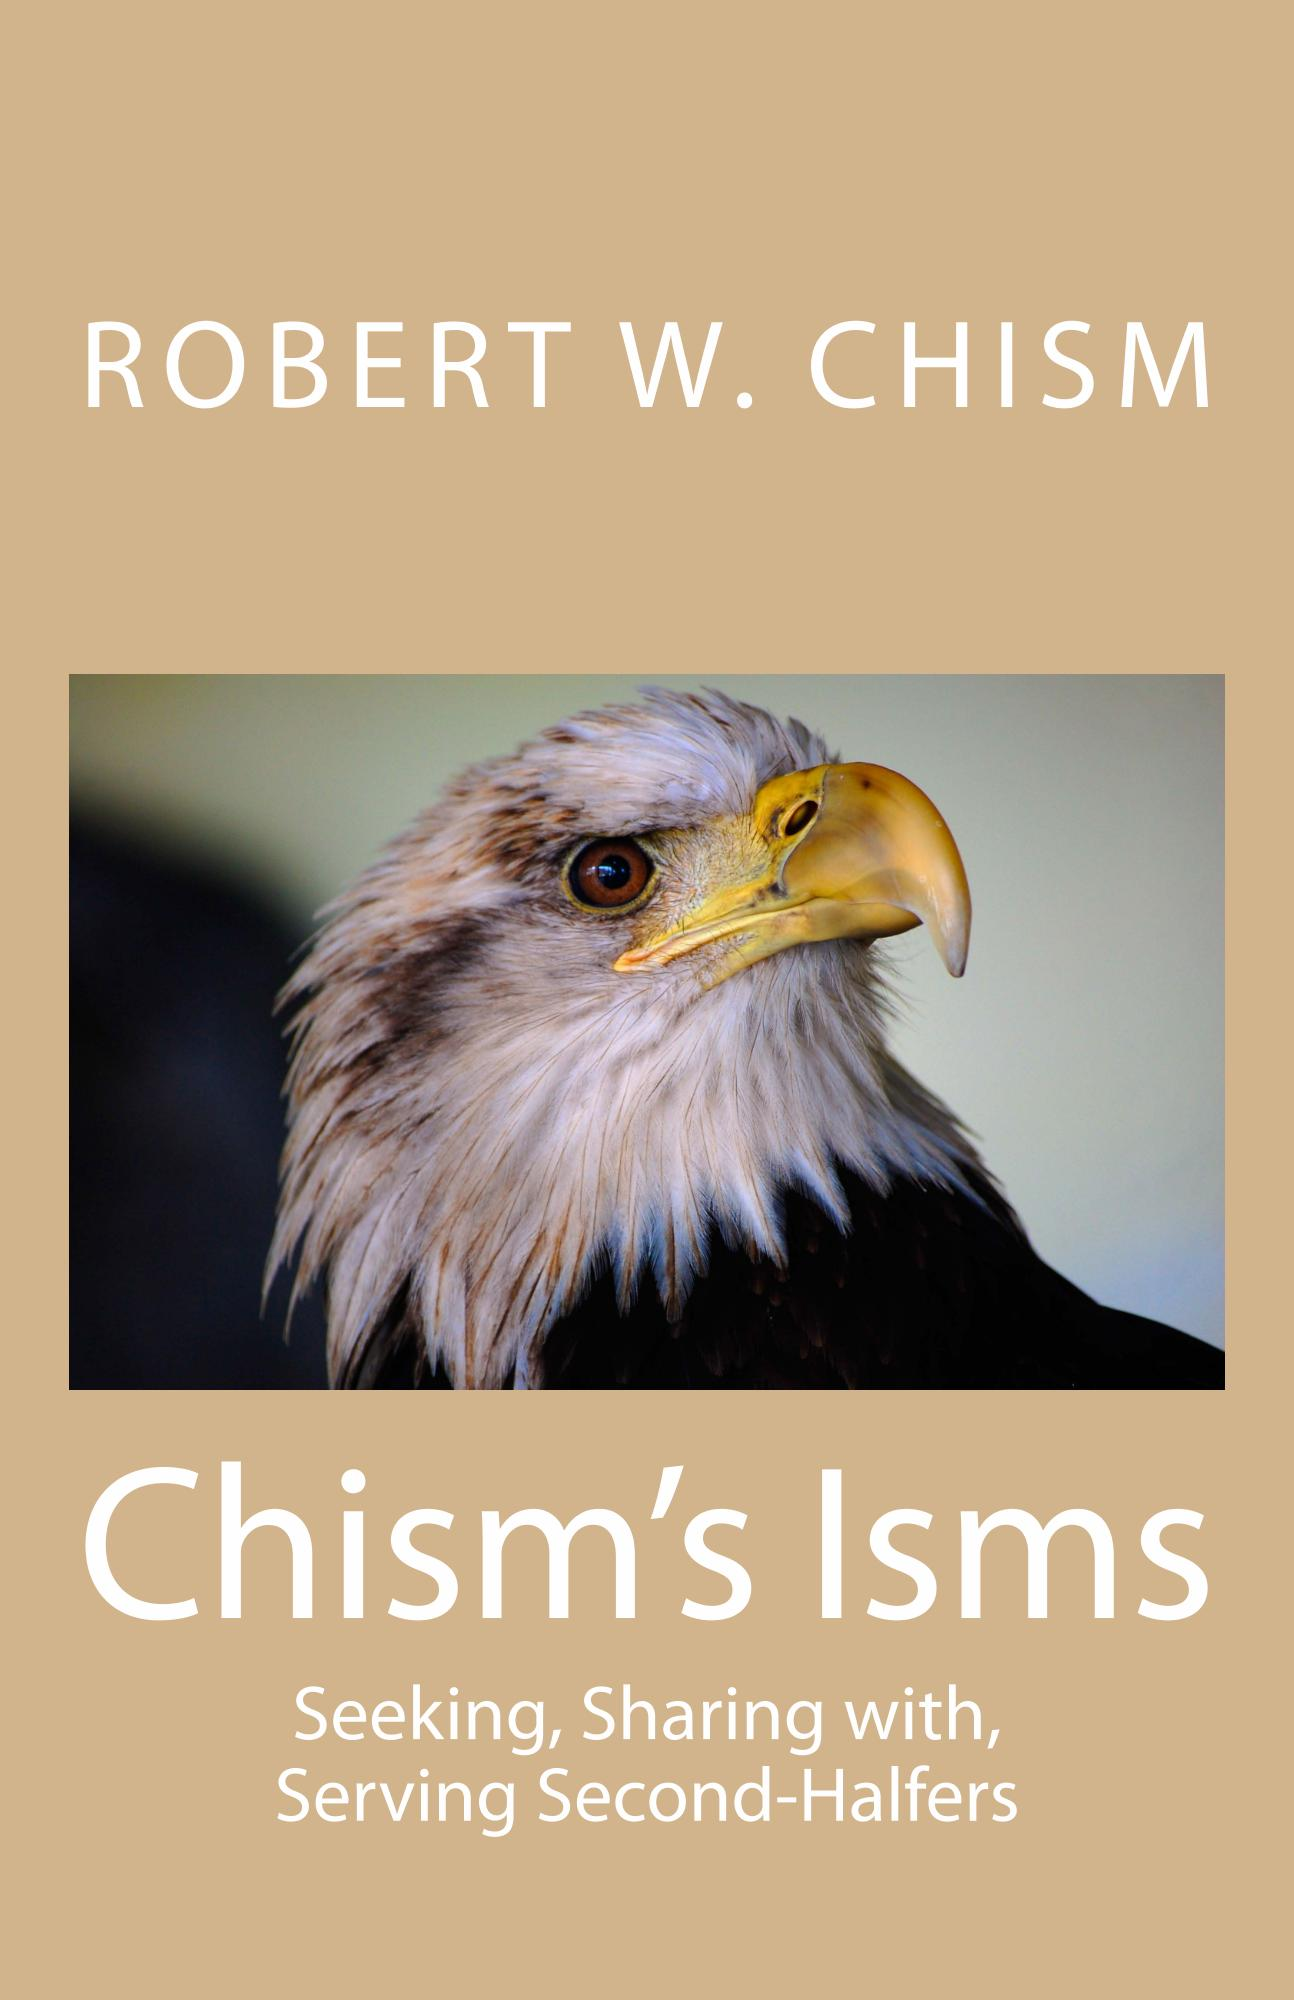 chism's_isms_cover_for_kindle